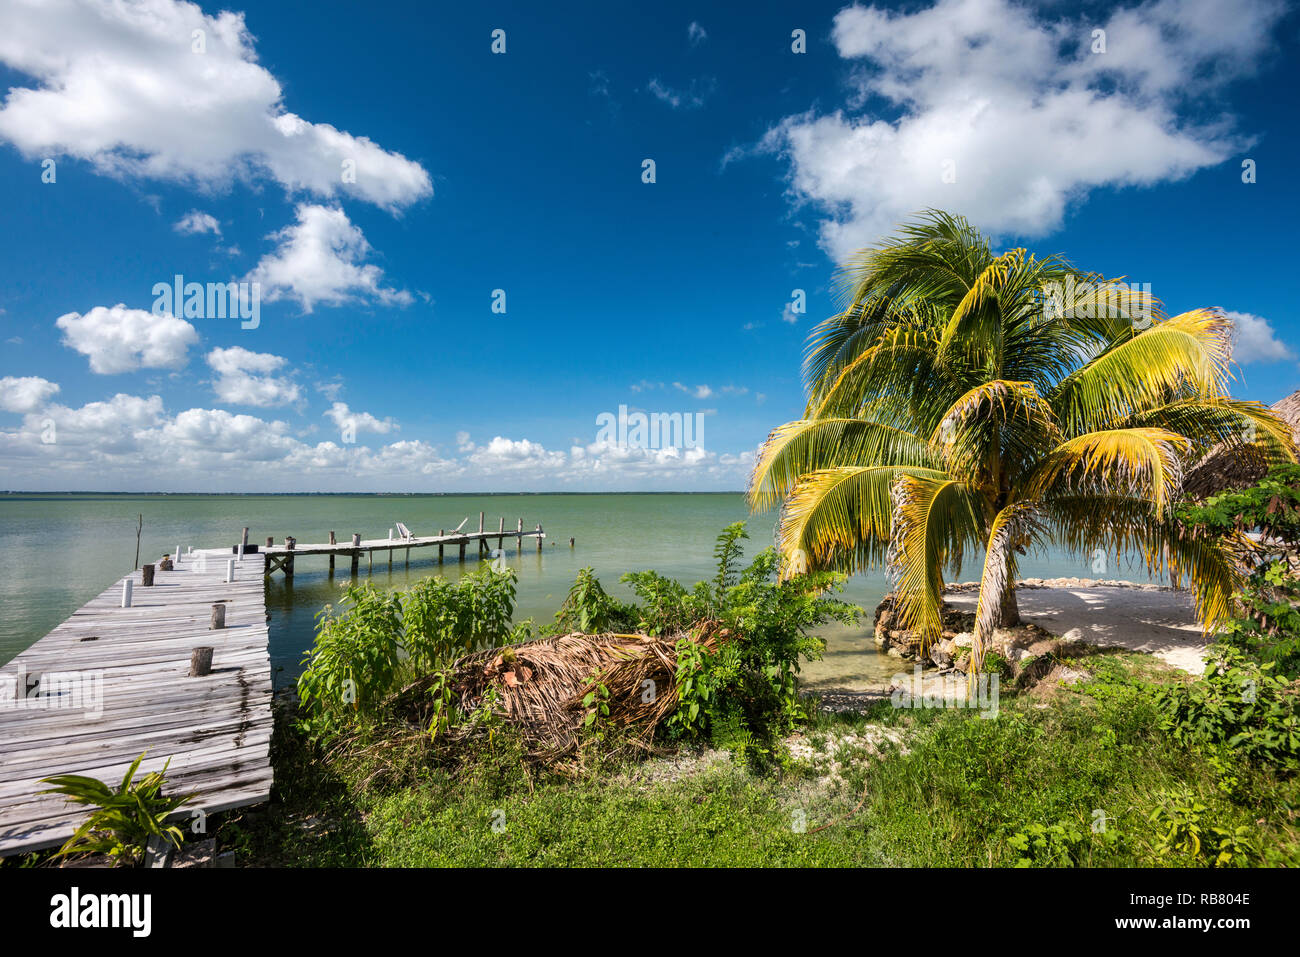 Boardwalk, palm tree at Corozal Bay seashore, Caribbean Sea coast, Cerros Beach Resort, Cerros Peninsula, Corozal District, BelizeBoardwalk, palm tree - Stock Image